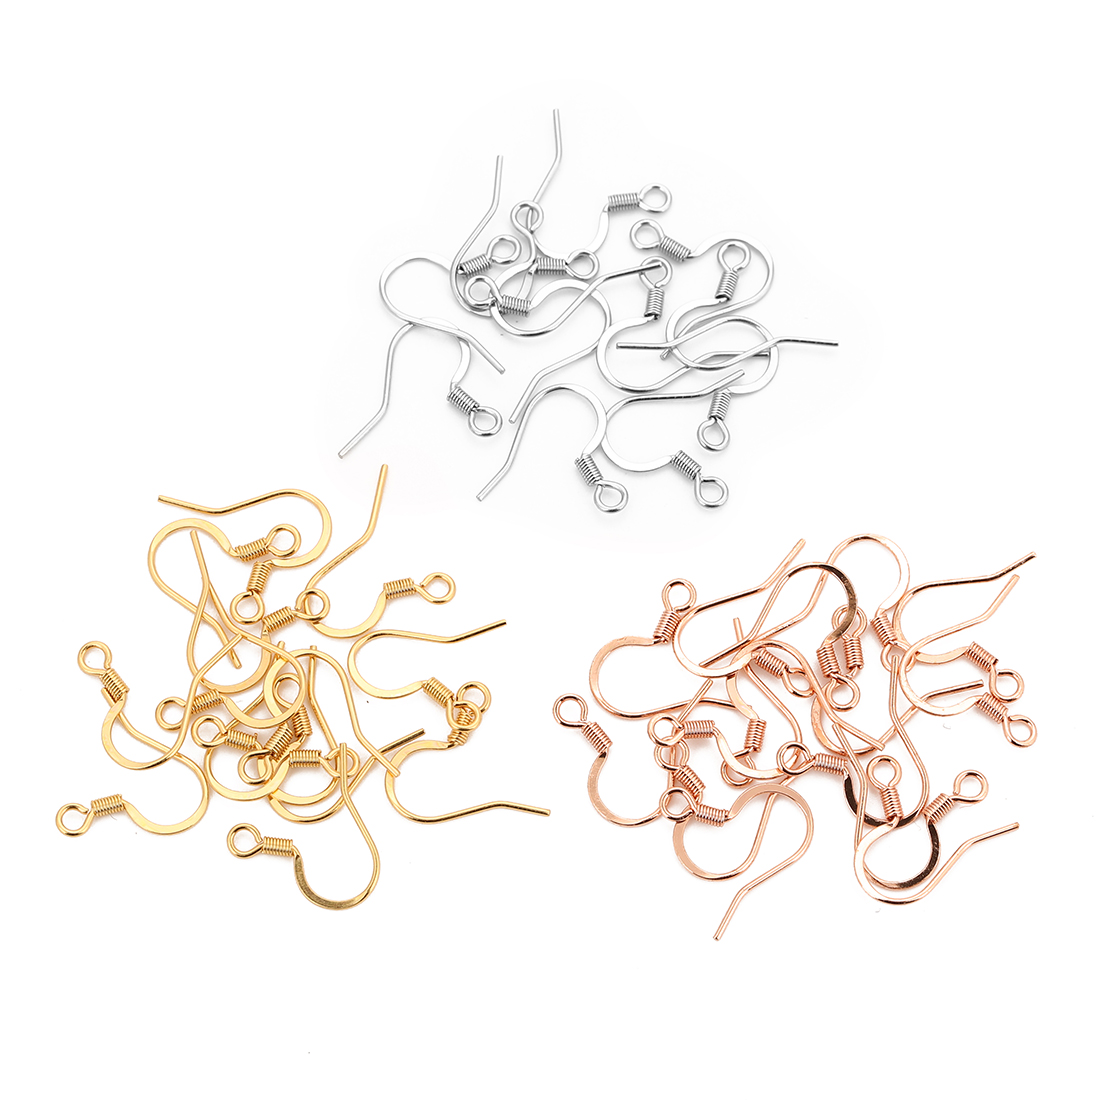 50pcs/lot 316L Surgical Stainless Steel 0.7x15mm Gold Rose Gold Silver Tone Ear Wire Fish Hook DIY Earring Clasp Jewelry Finding